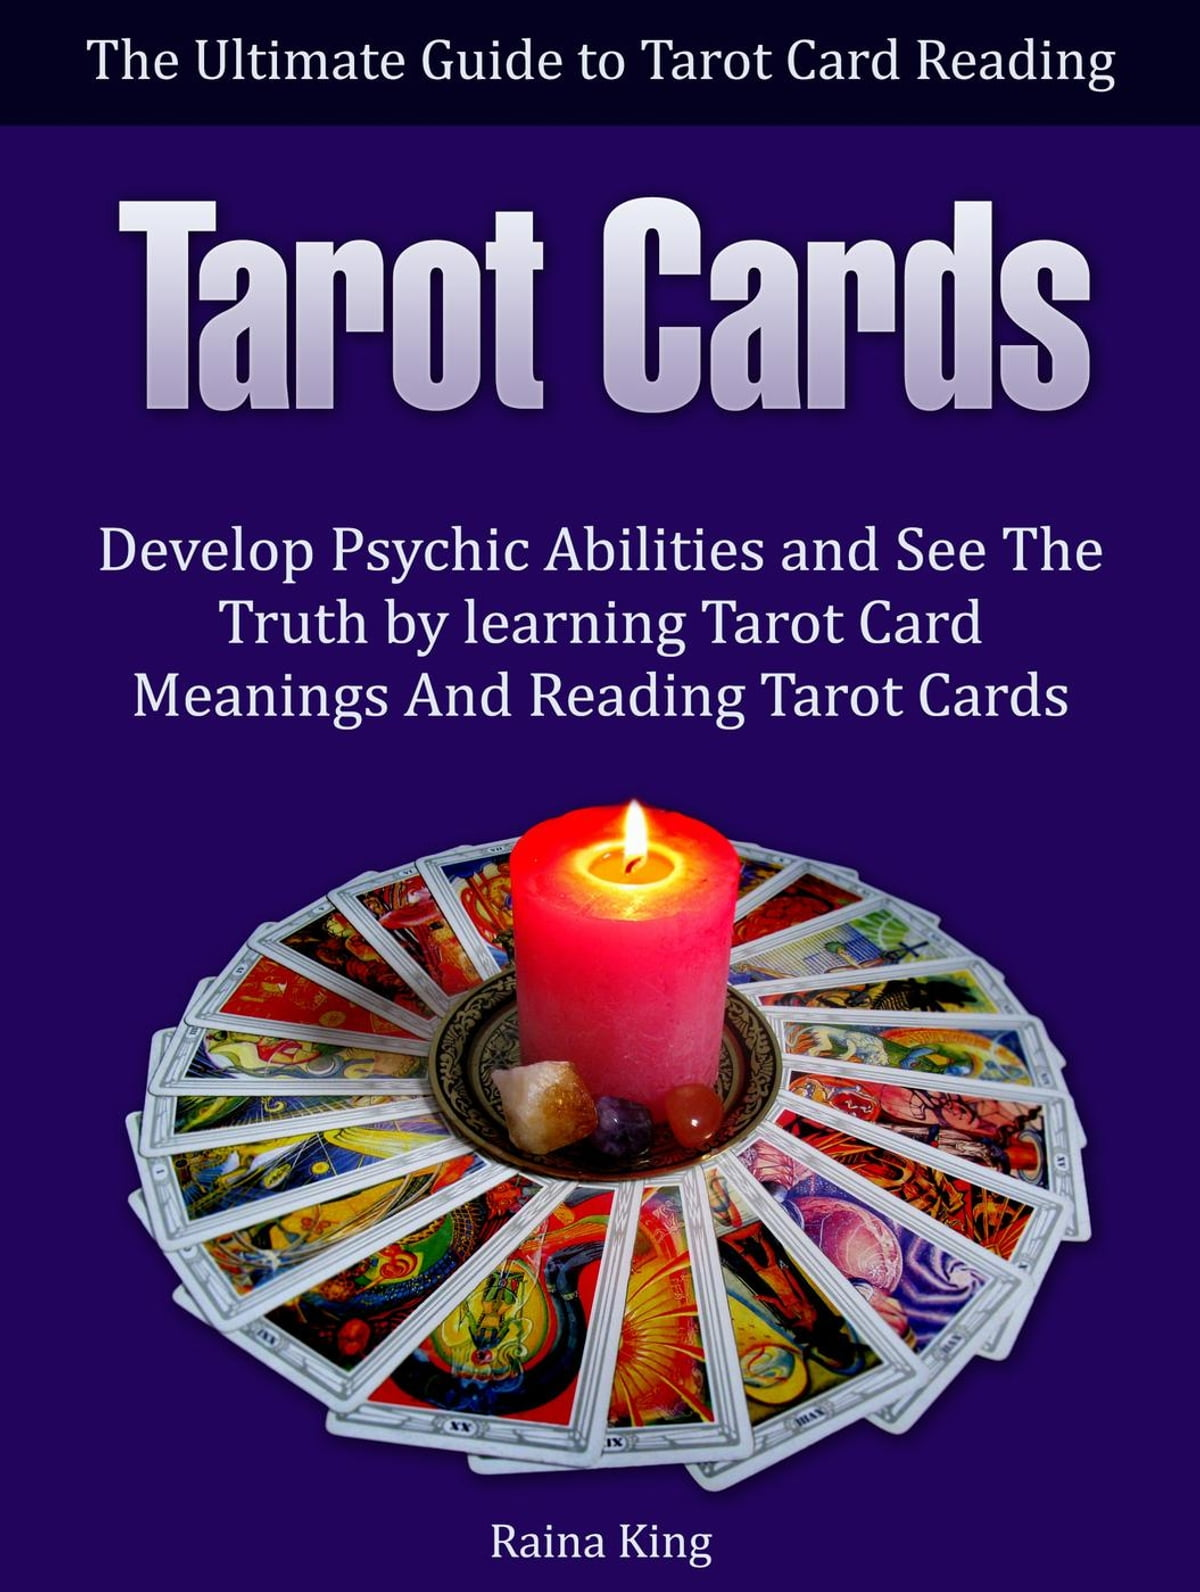 Tarot Cards: The Ultimate Guide to Tarot Card Reading: Develop Psychic  Abilities and See The Truth by learning Tarot Card Meanings And Reading  Tarot